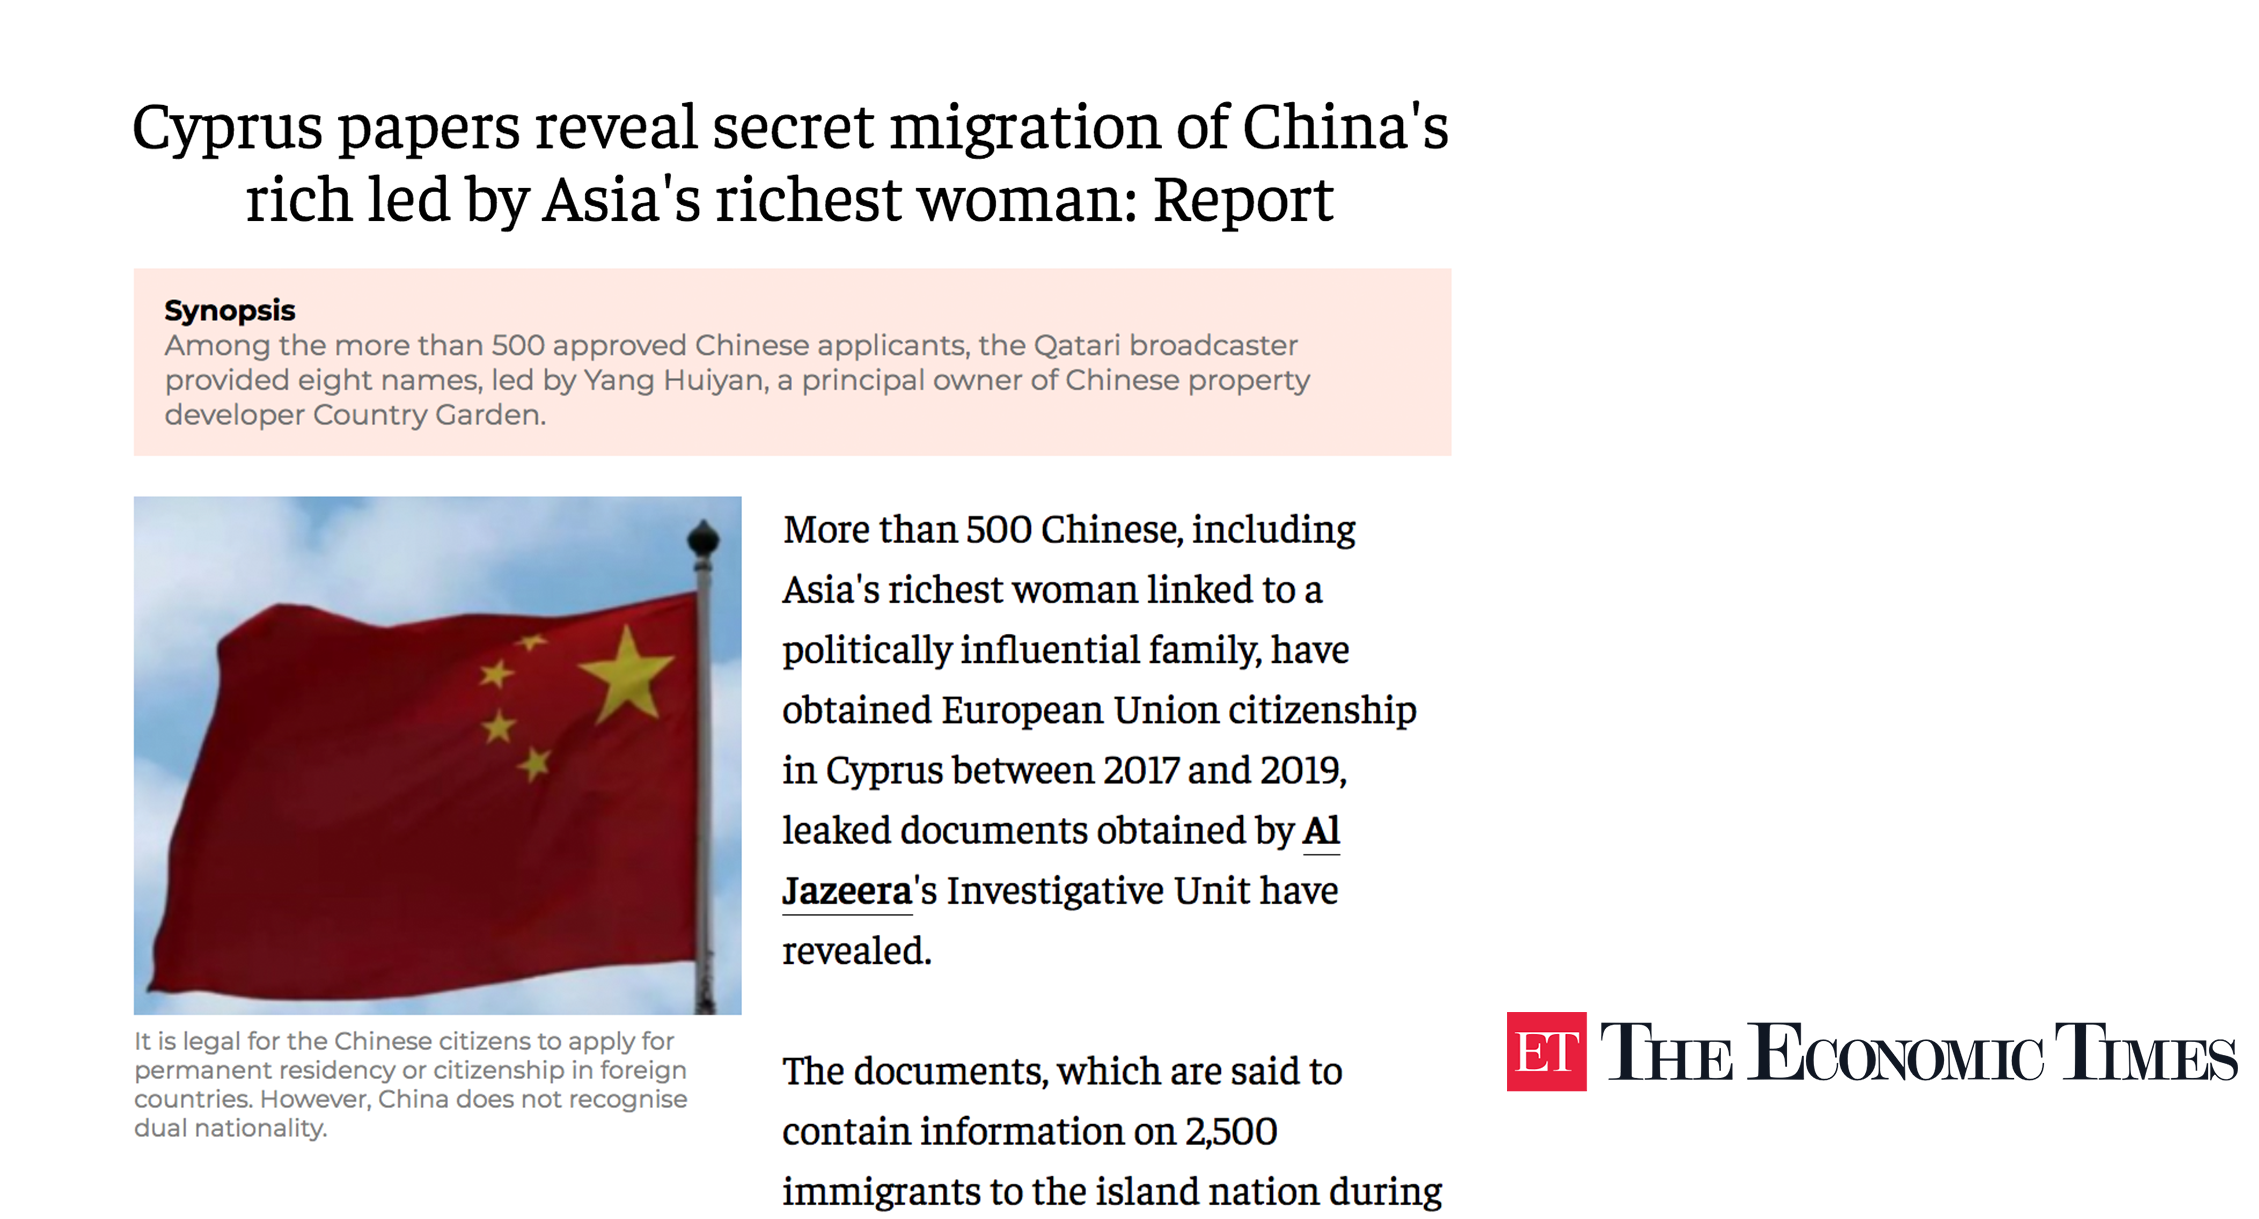 India Times: Cyprus papers reveal secret migration of China's rich led by Asia's richest woman